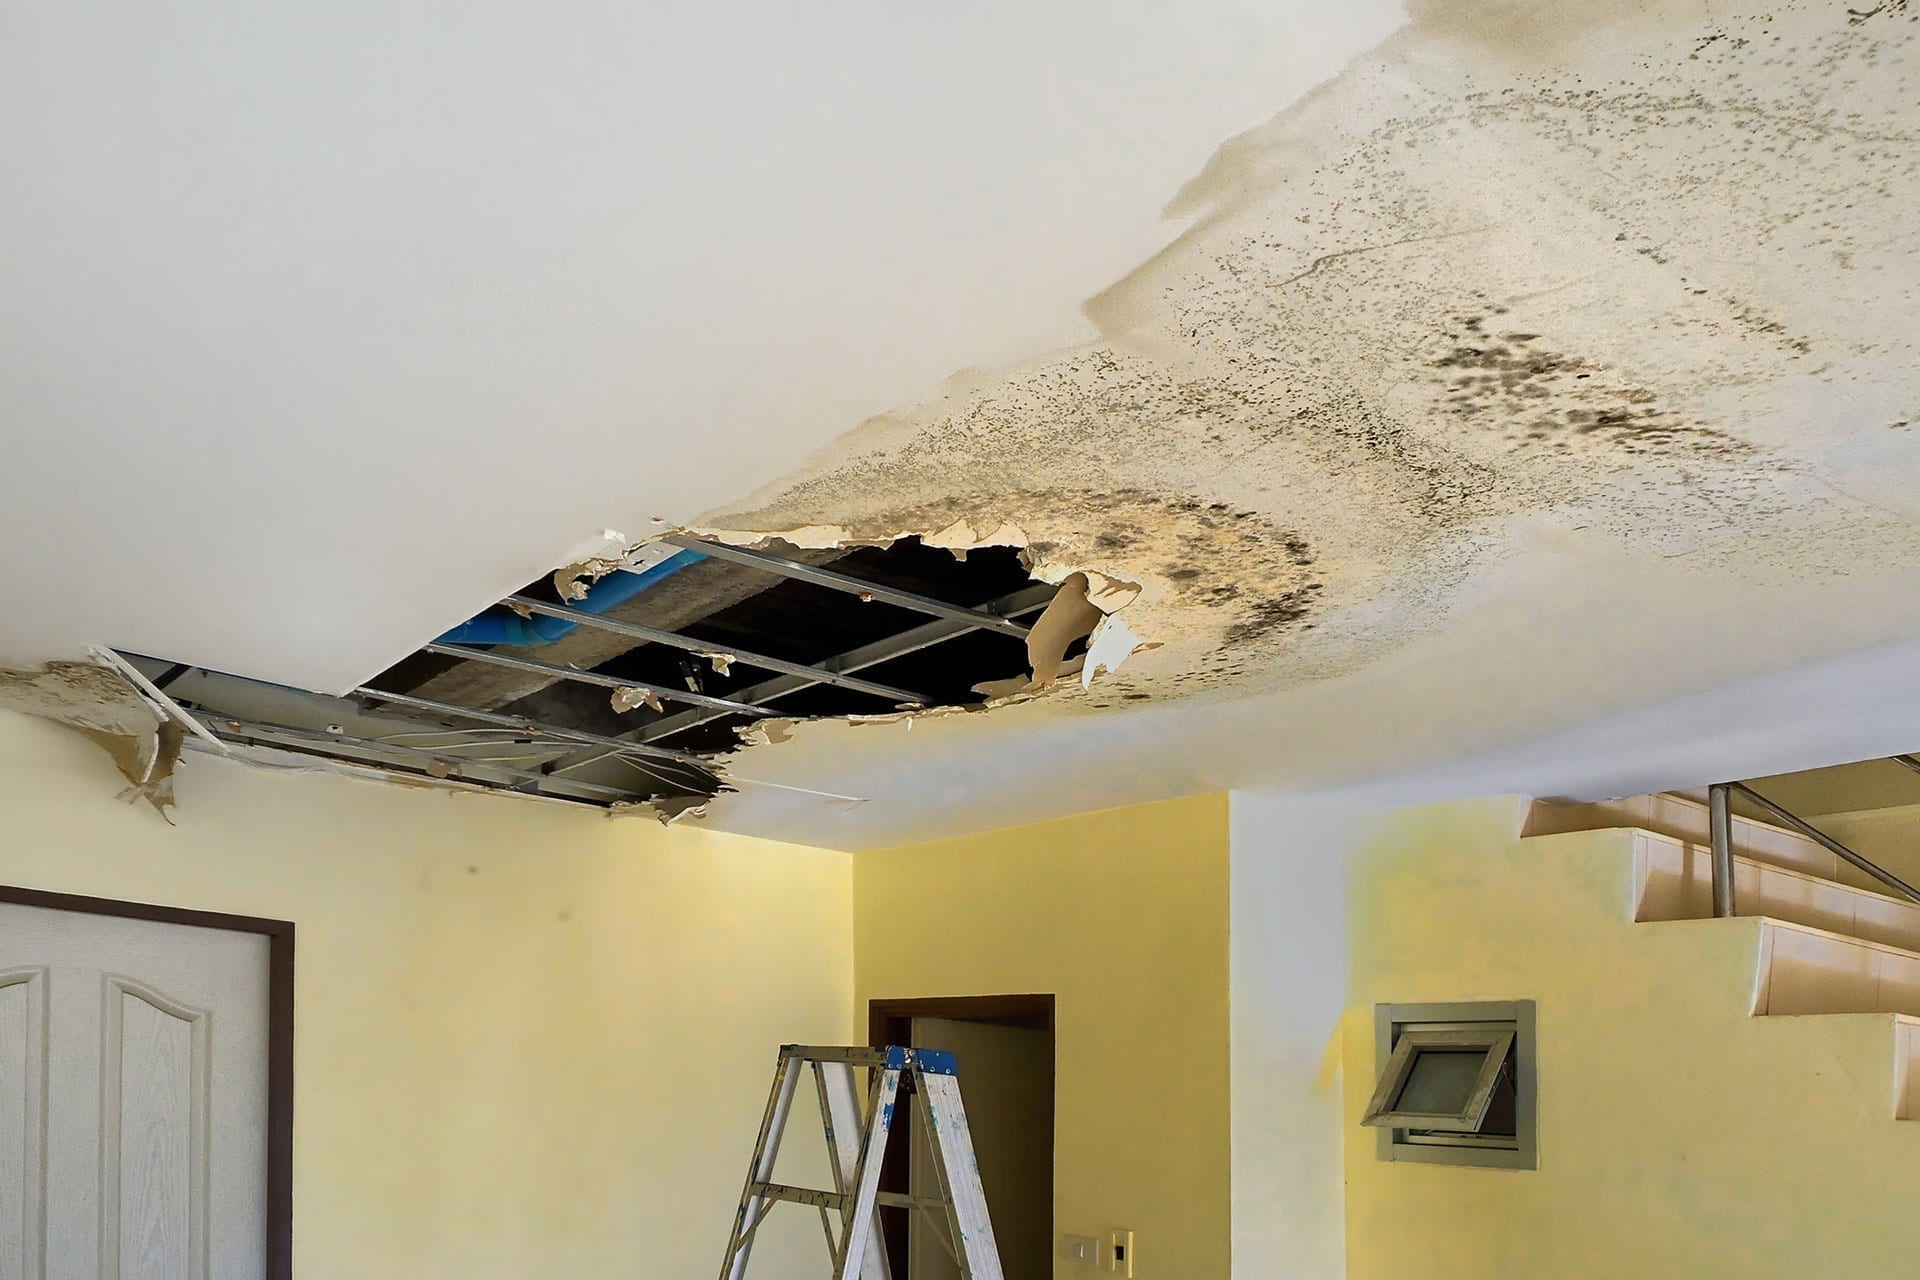 24/7 Water Damage Repair Topeka KS